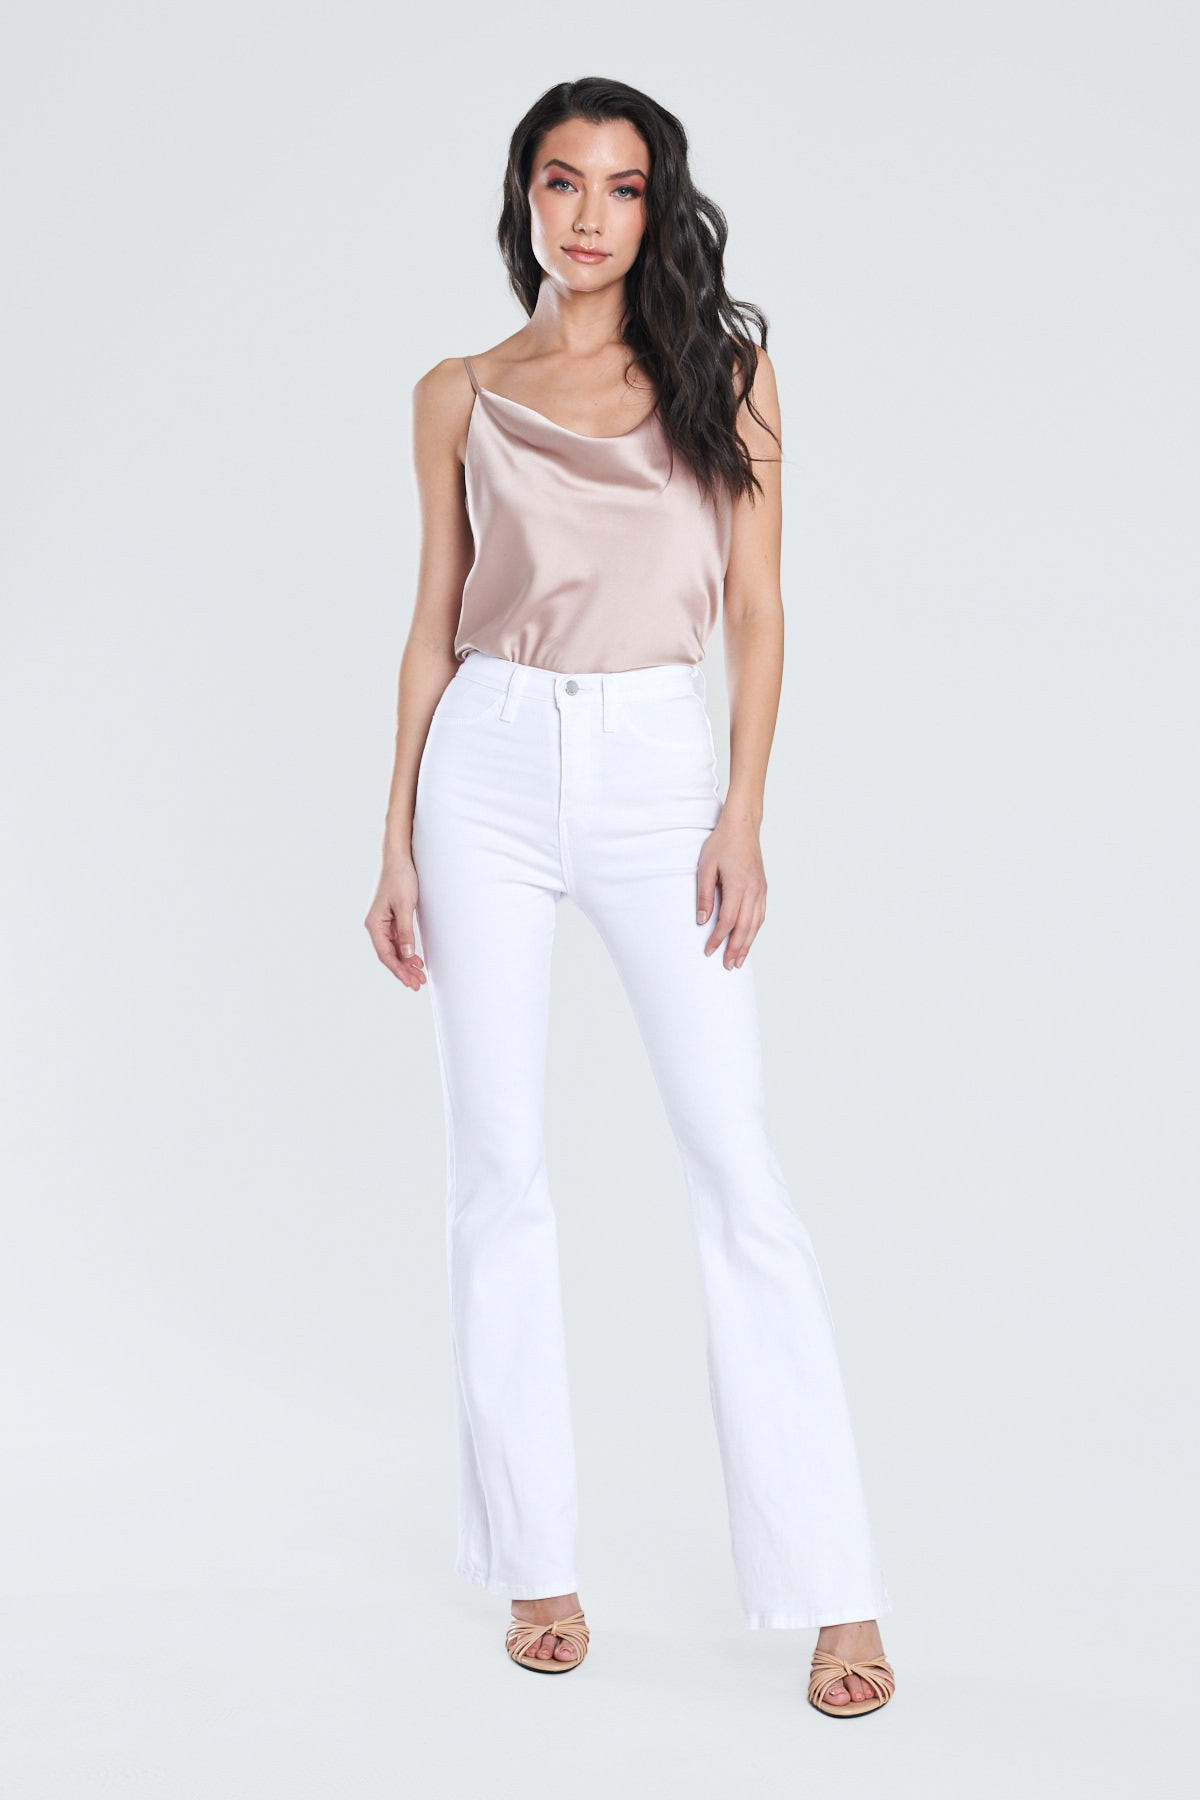 White Classic Flare Jeans -White - Front